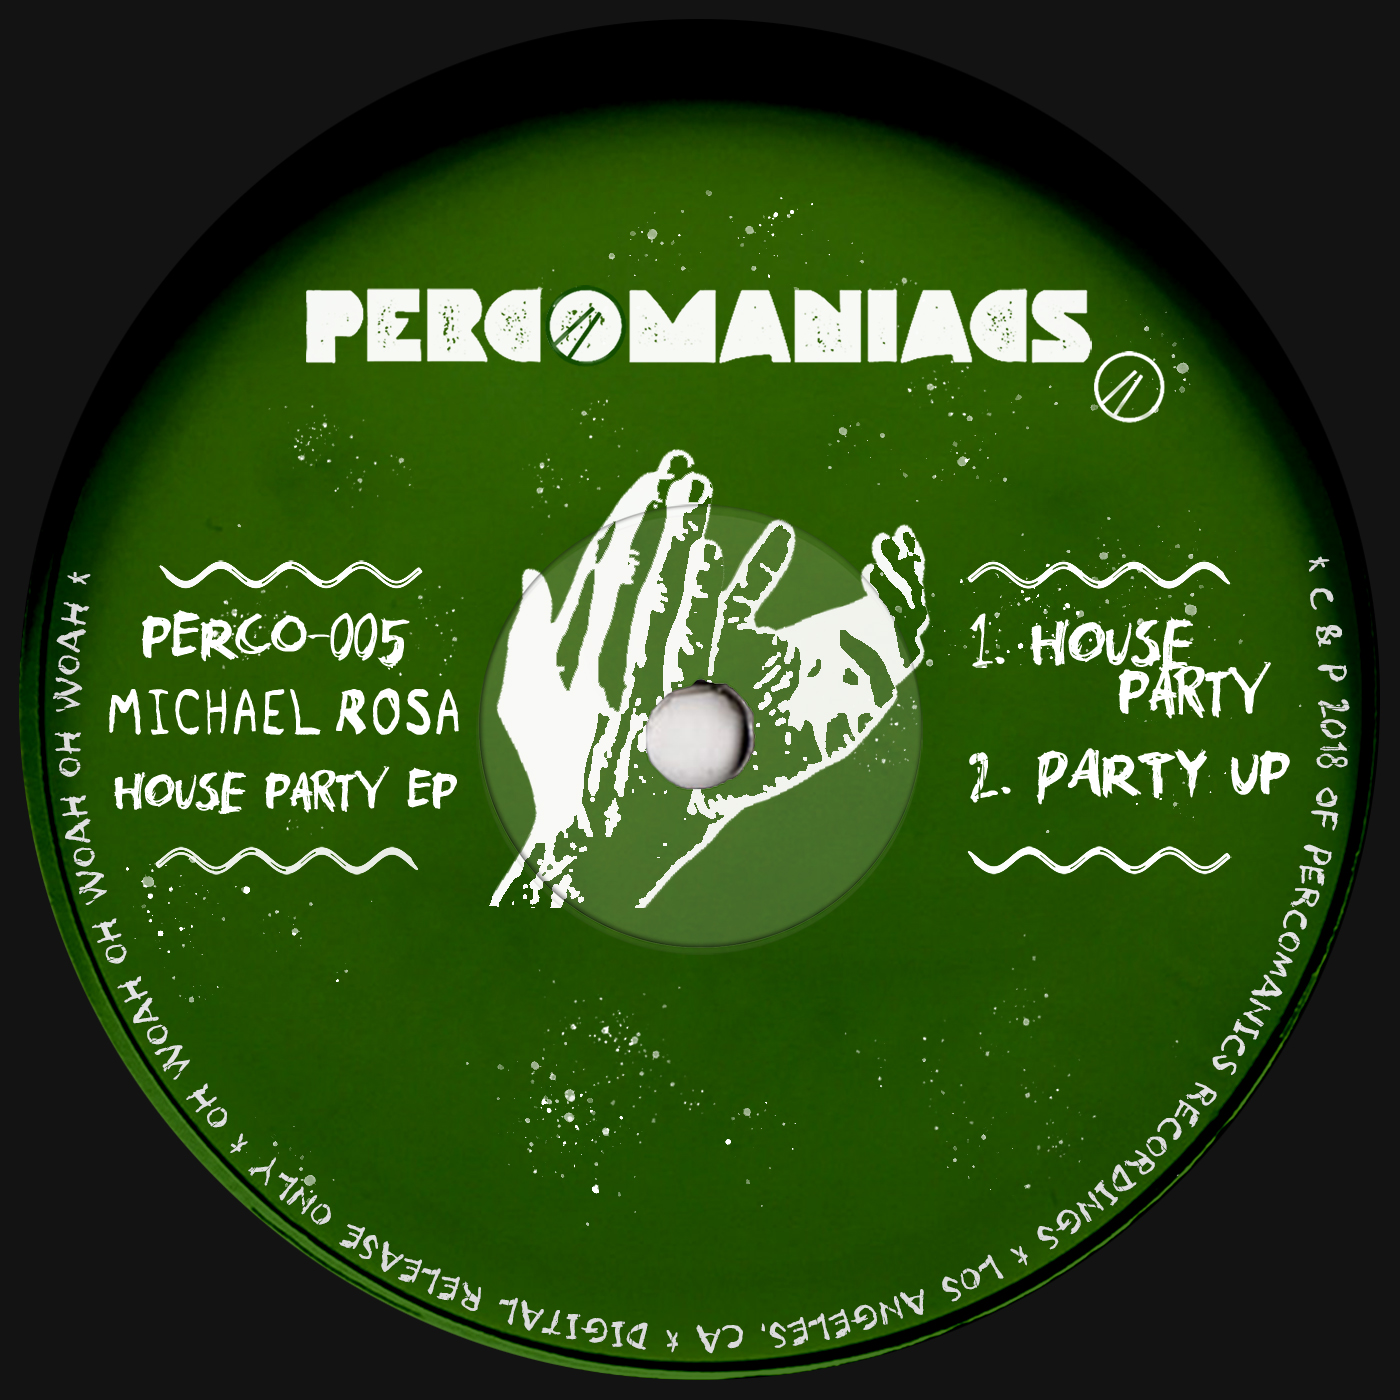 PERCO005 - Michael Rosa - House Party EP